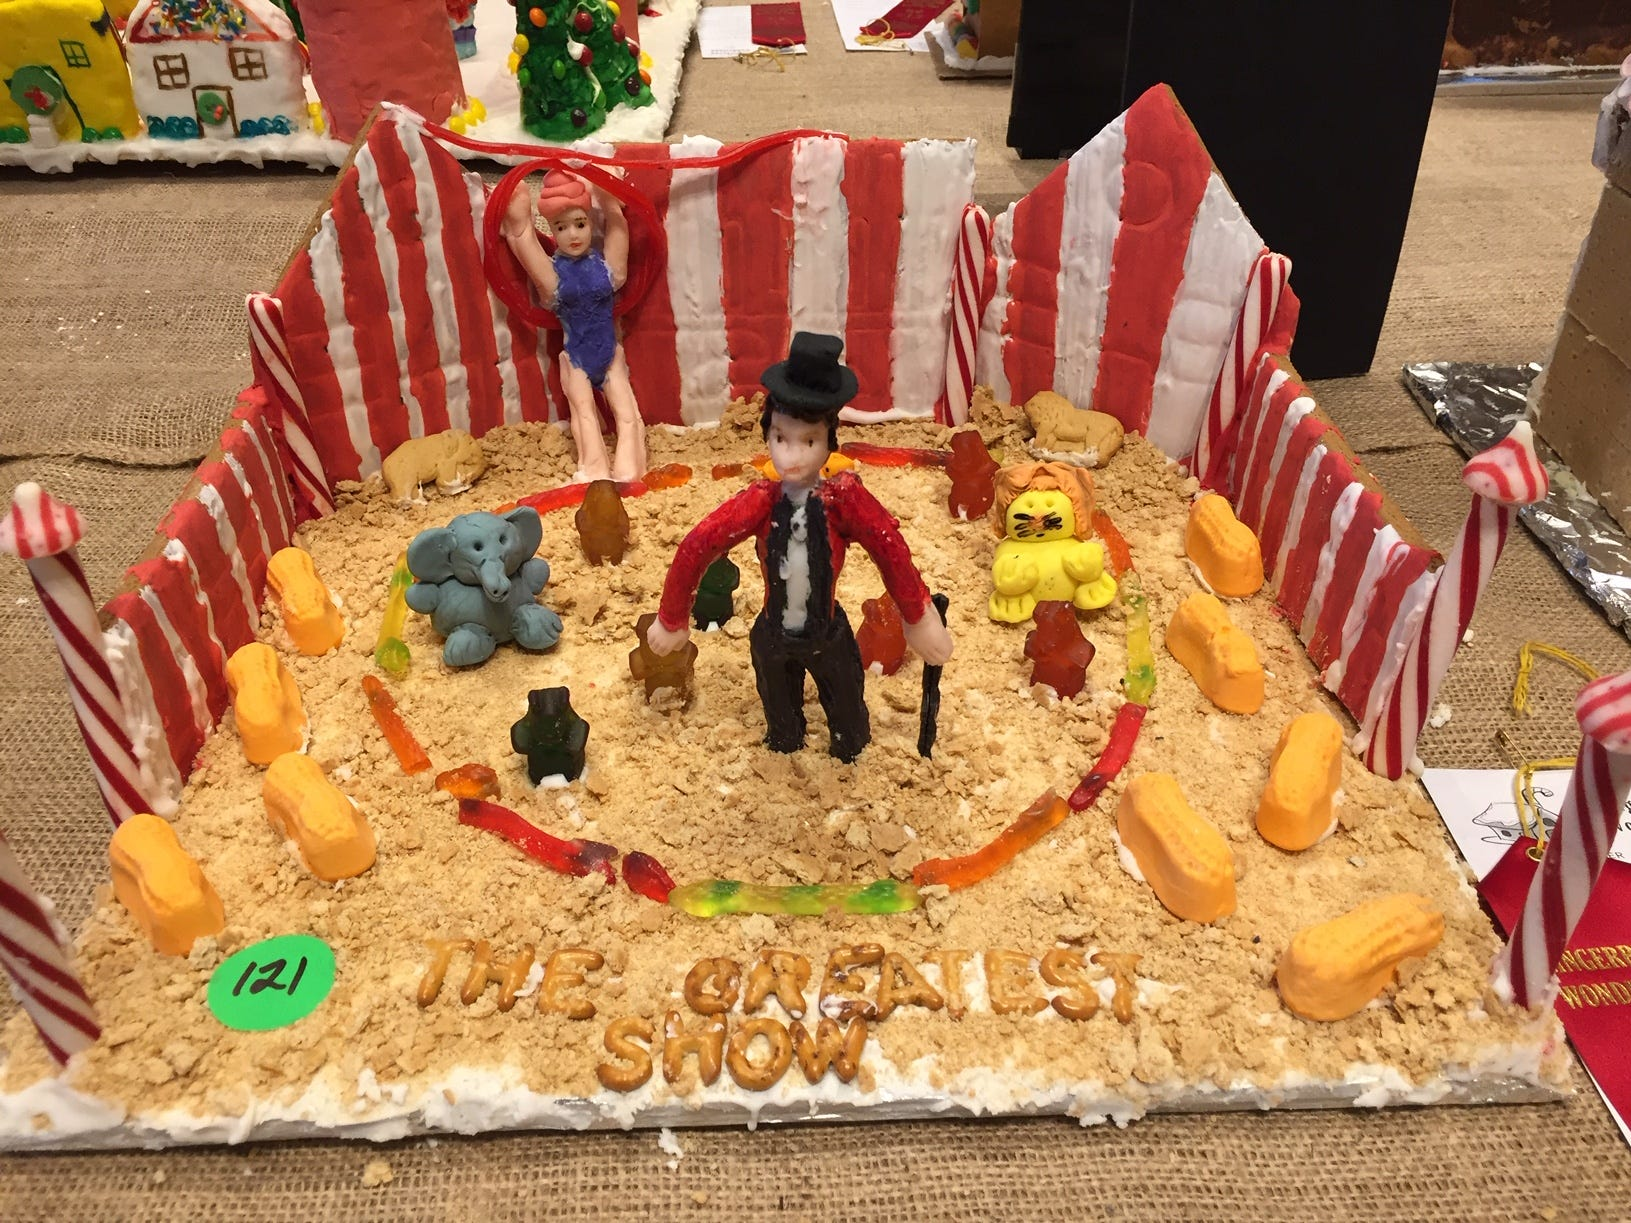 """The Greatest Show"" by Sophie Marks of Parsippany, fourth grade, at the Gingerbread Wonderland at the Frelinghuysen Arboretum. Child category."